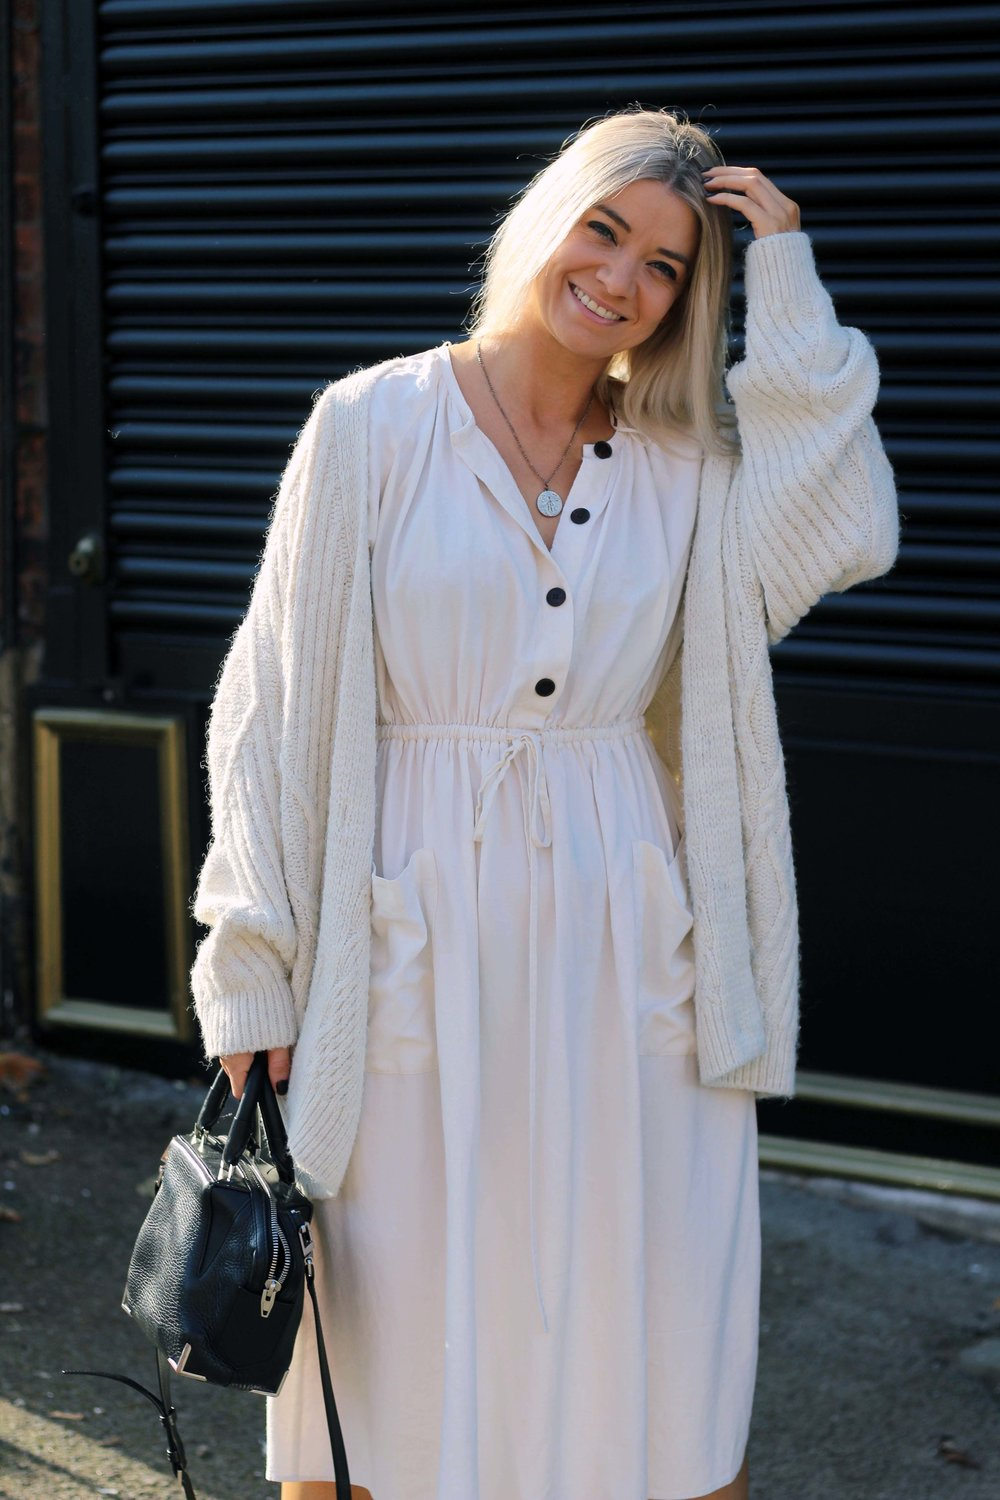 zara linen dress, cream cardigan, superga trainers, northern magpie, joey taylor 6